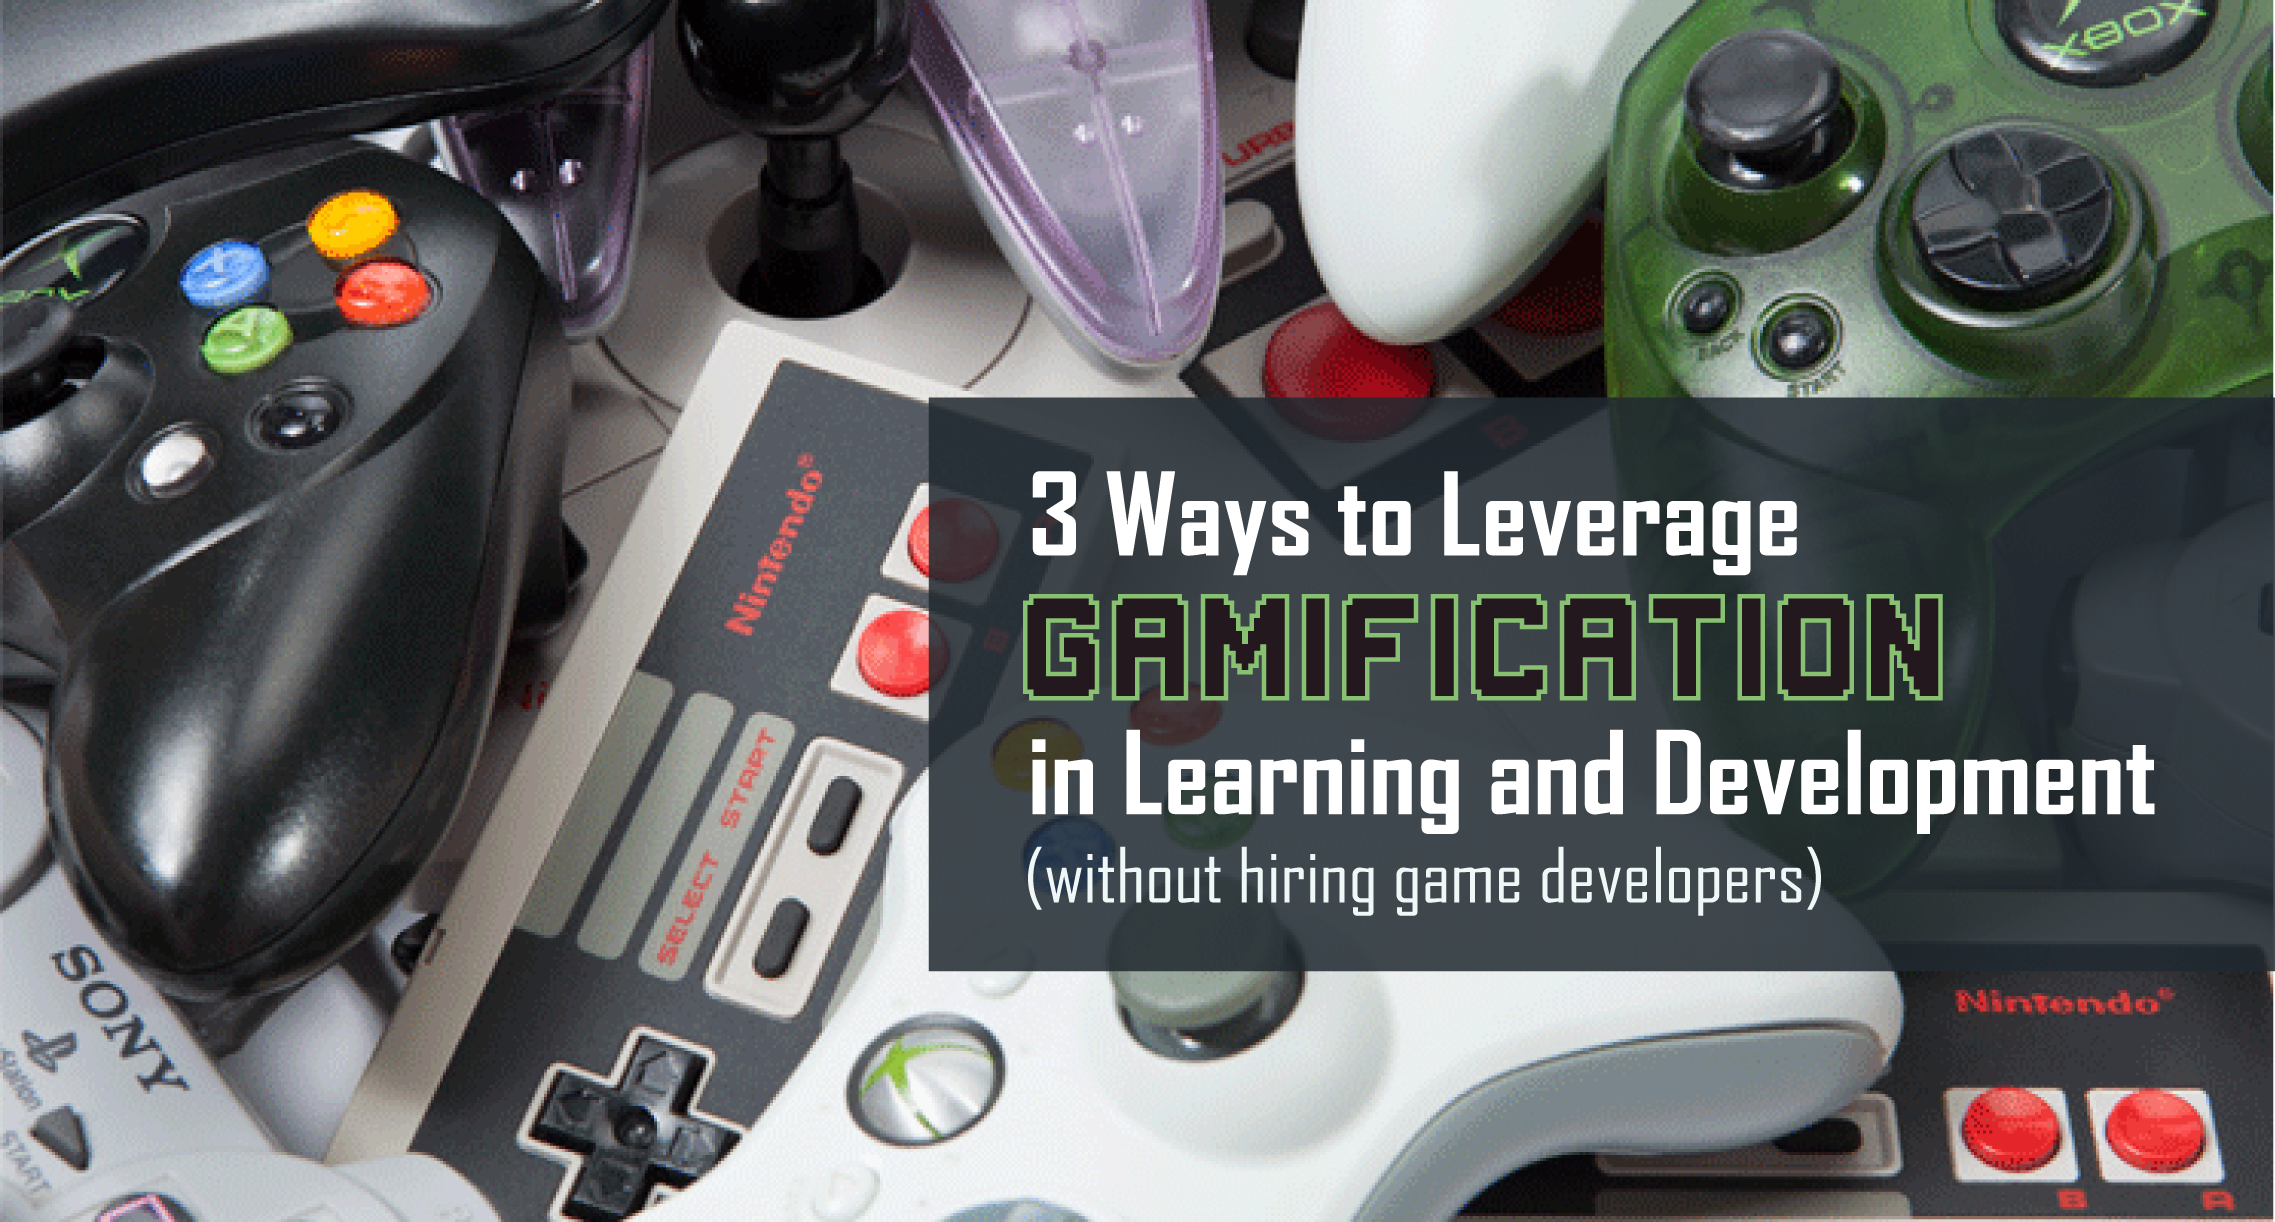 3 Ways to Leverage Gamification in Learning and Development (without hiring game developers)